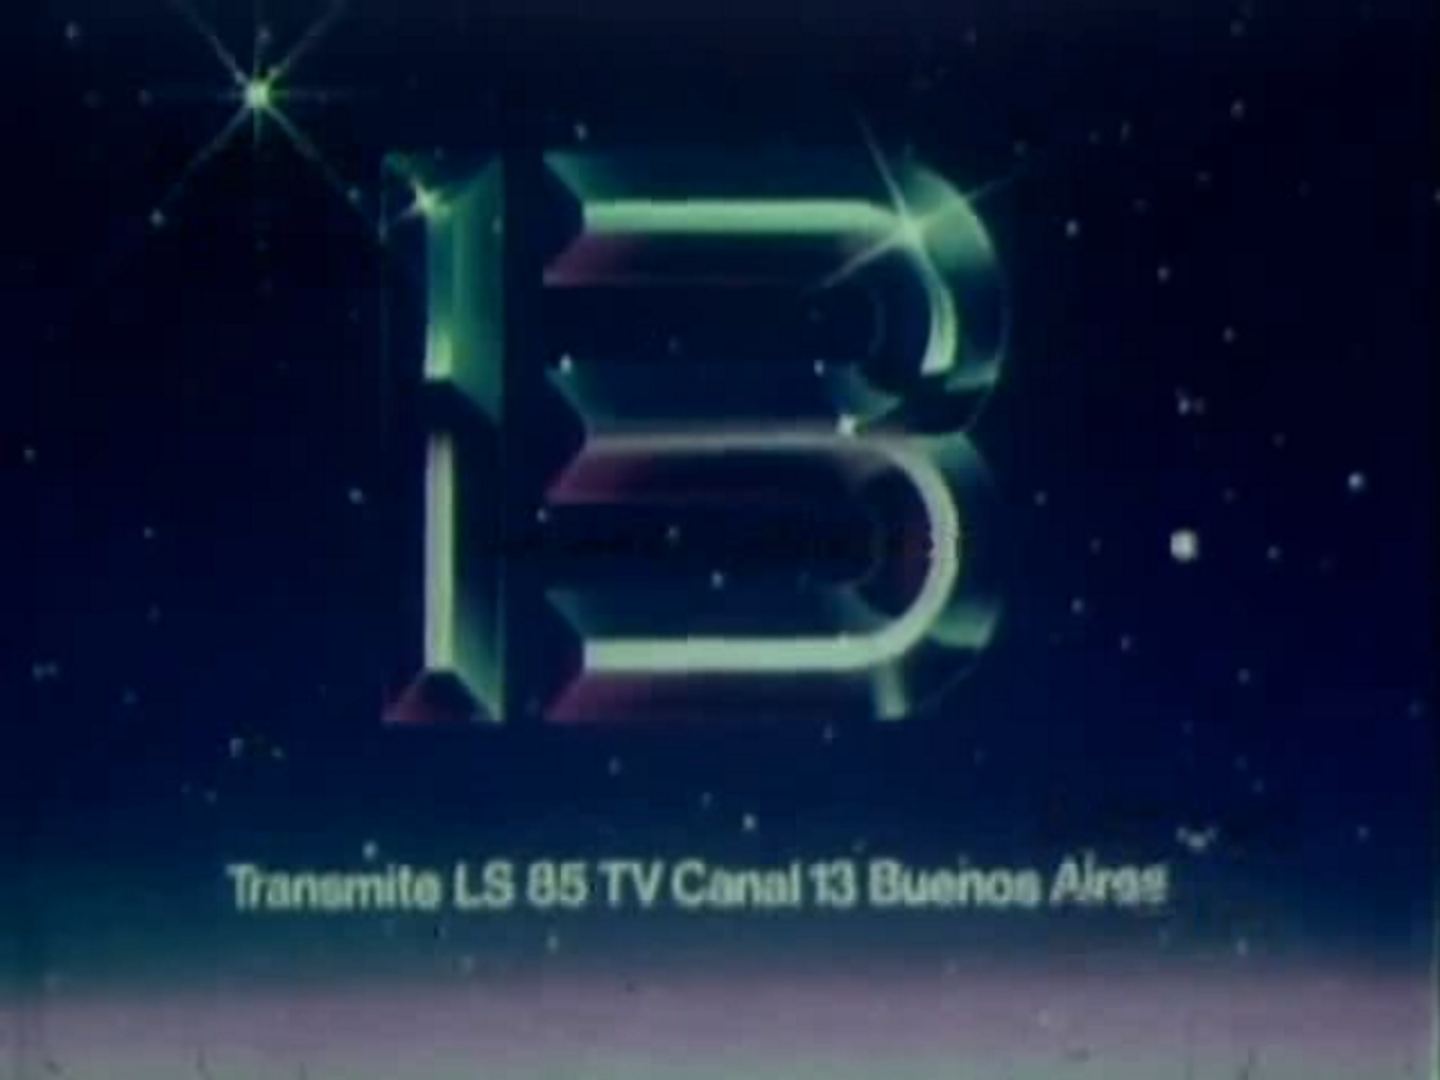 Canal 13 Argentina (1978)